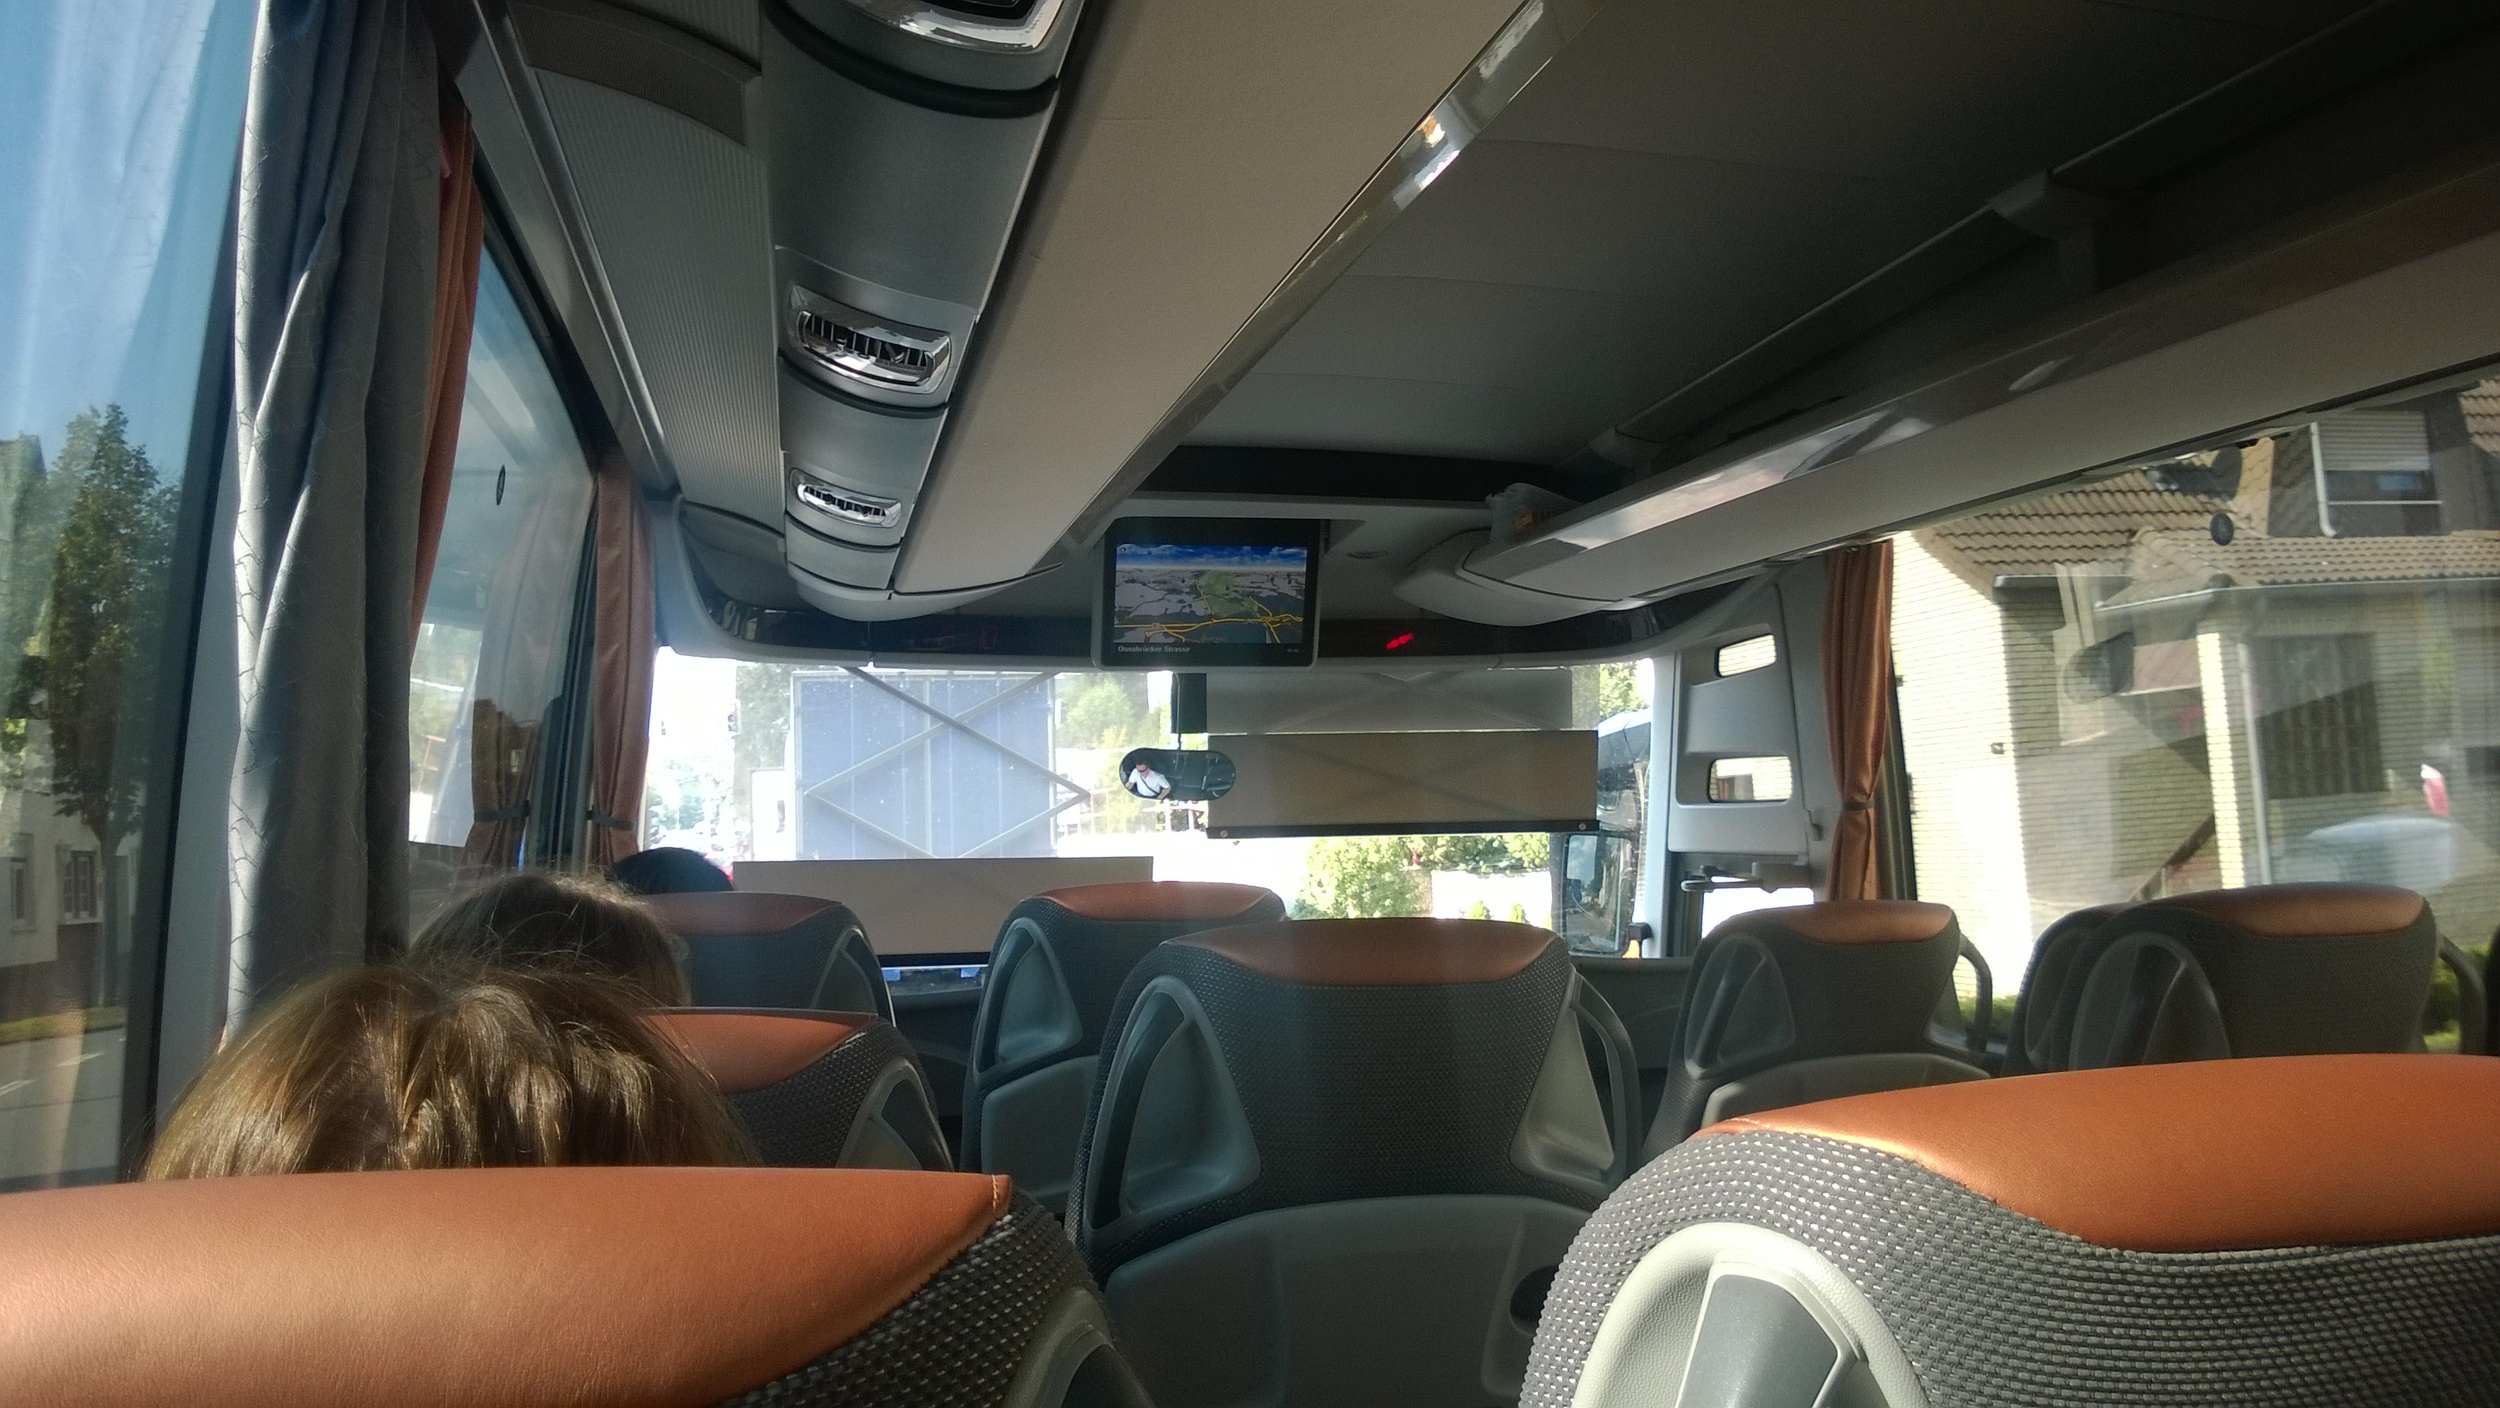 A  Meinfernbus  on which I had no Wi-Fi